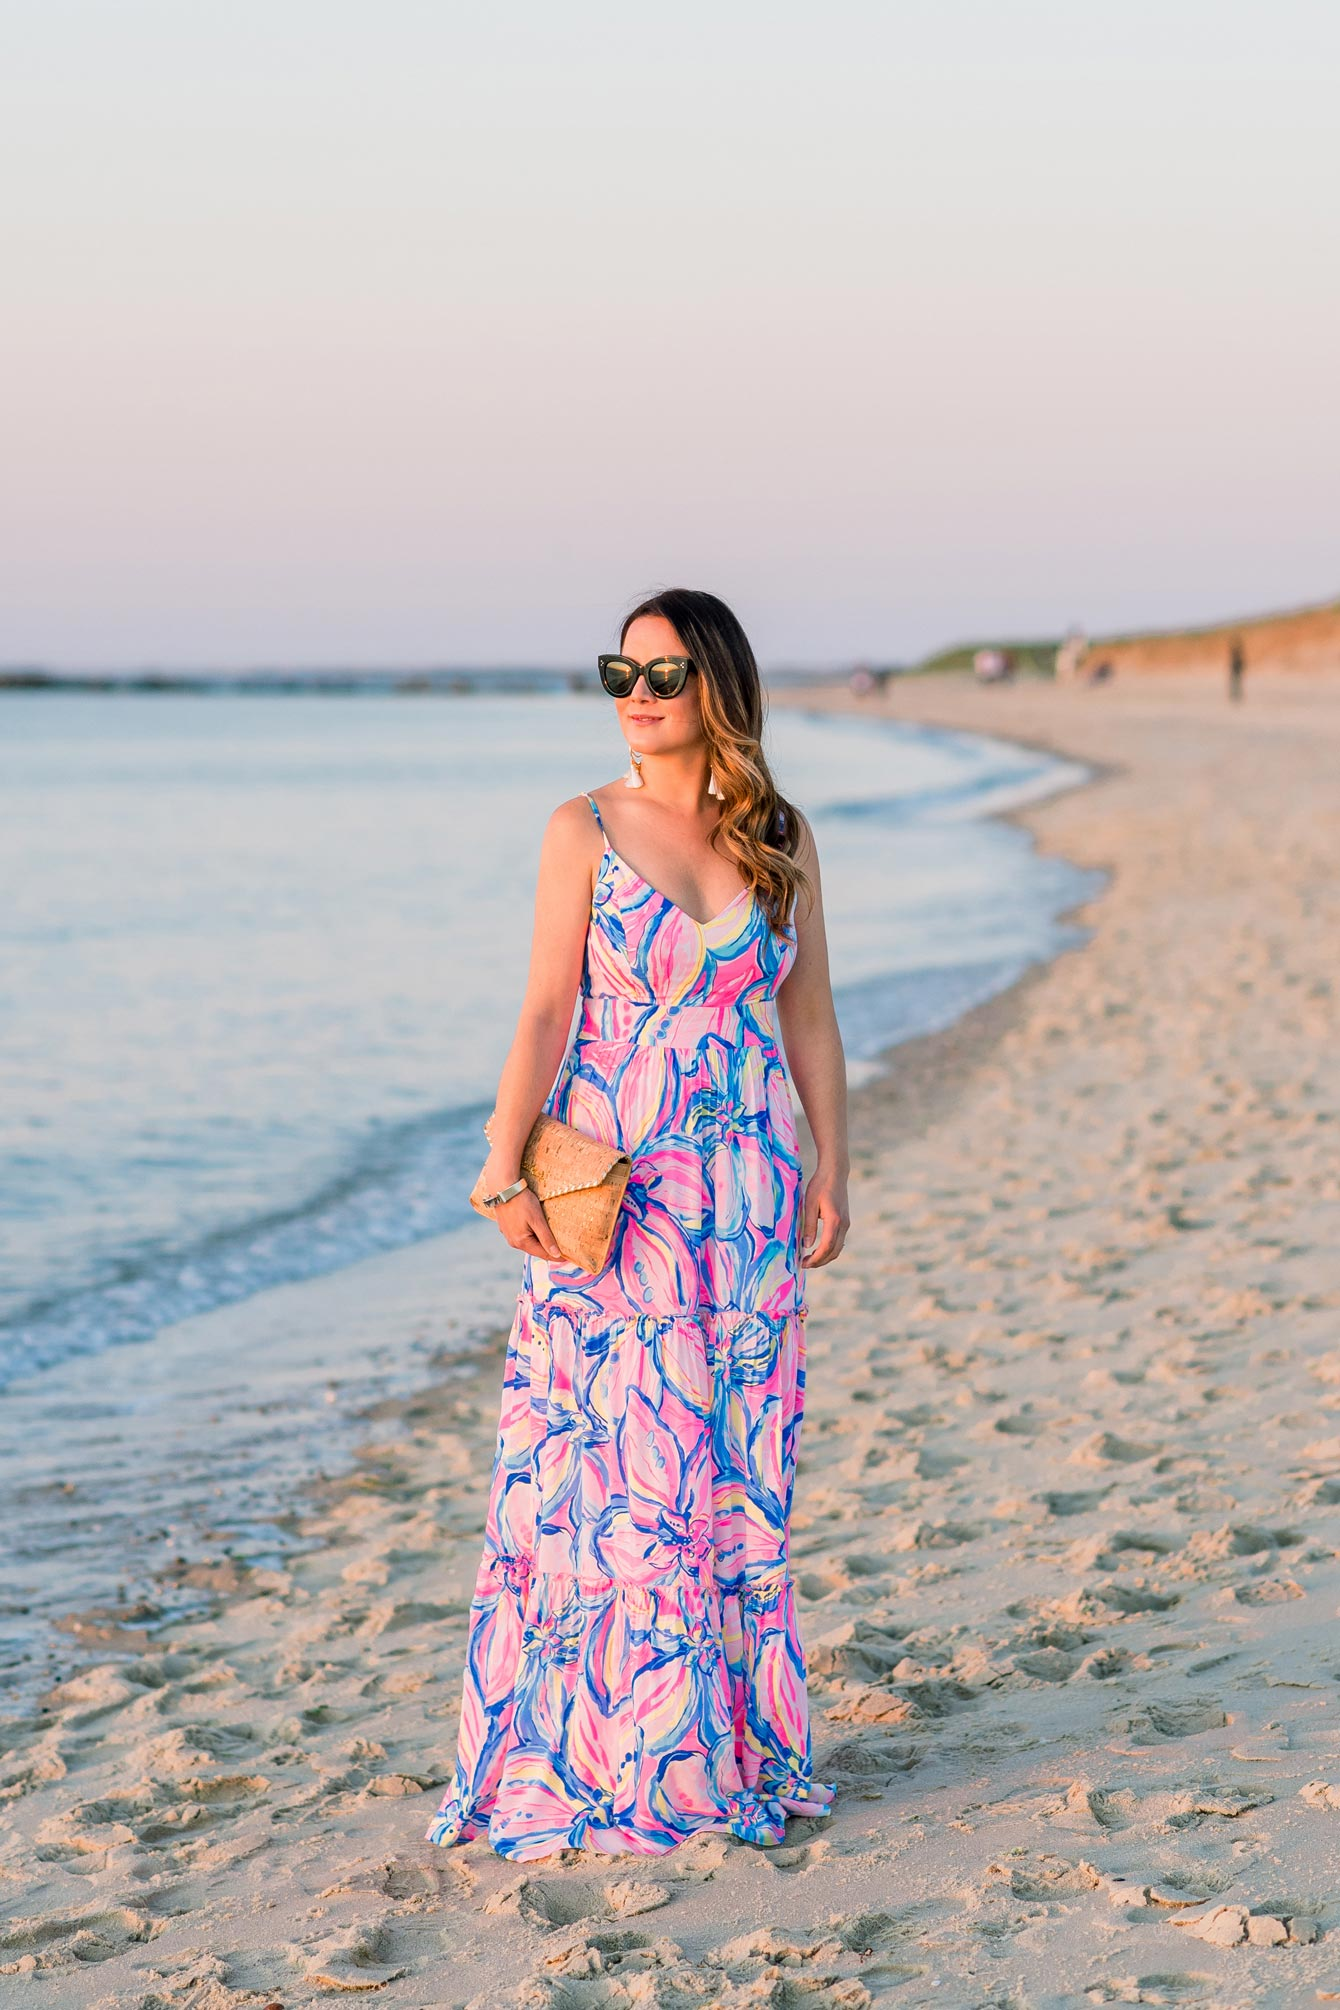 Jennifer Lake Lilly Pulitzer Maxi Dress